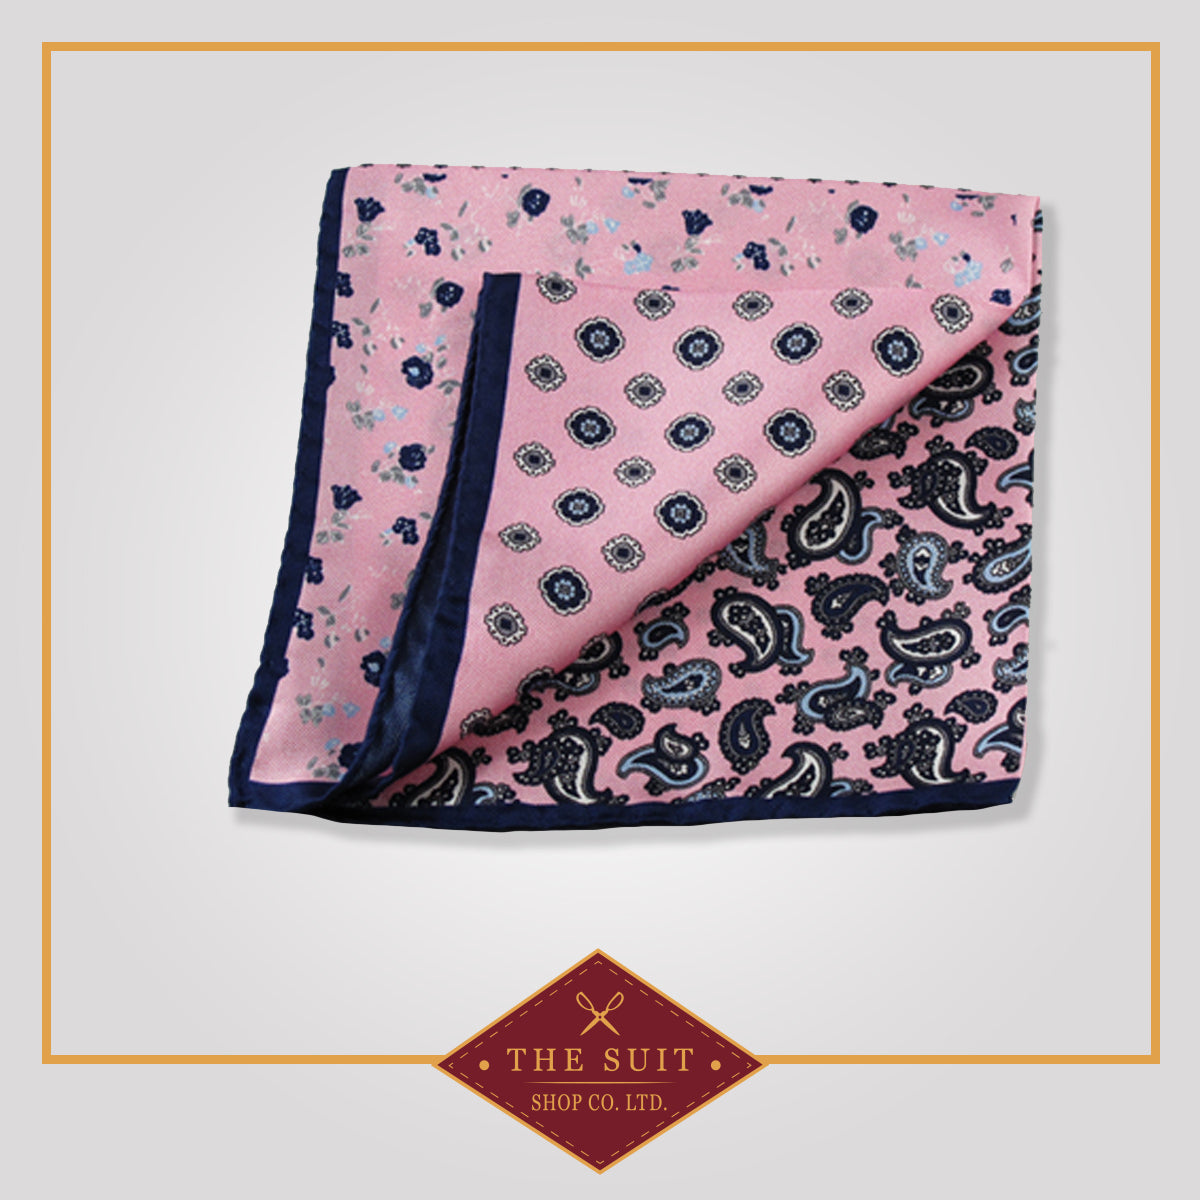 Blossom Patterned Silk Pocket Square